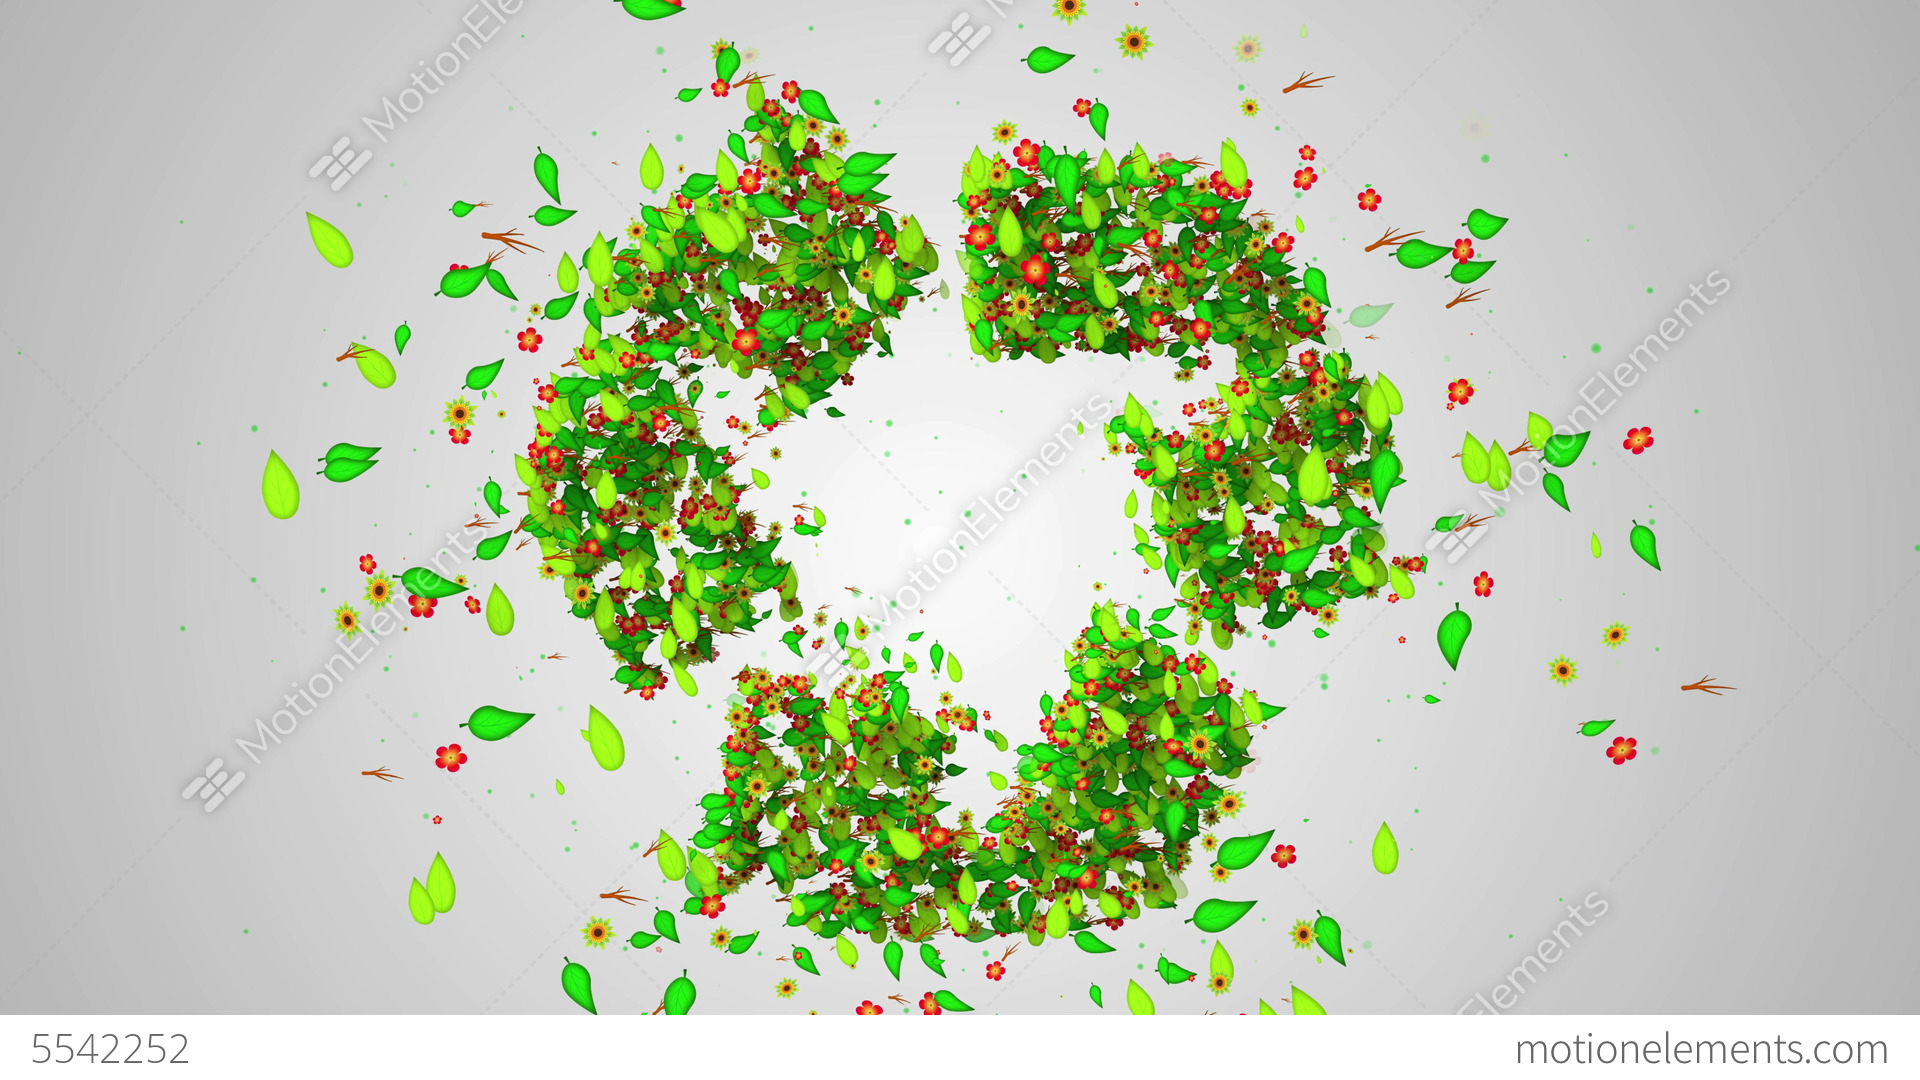 Recycle symbol green leaves particles butterfly stock animation recycle symbol green leaves particles butterfly stock video footage buycottarizona Choice Image